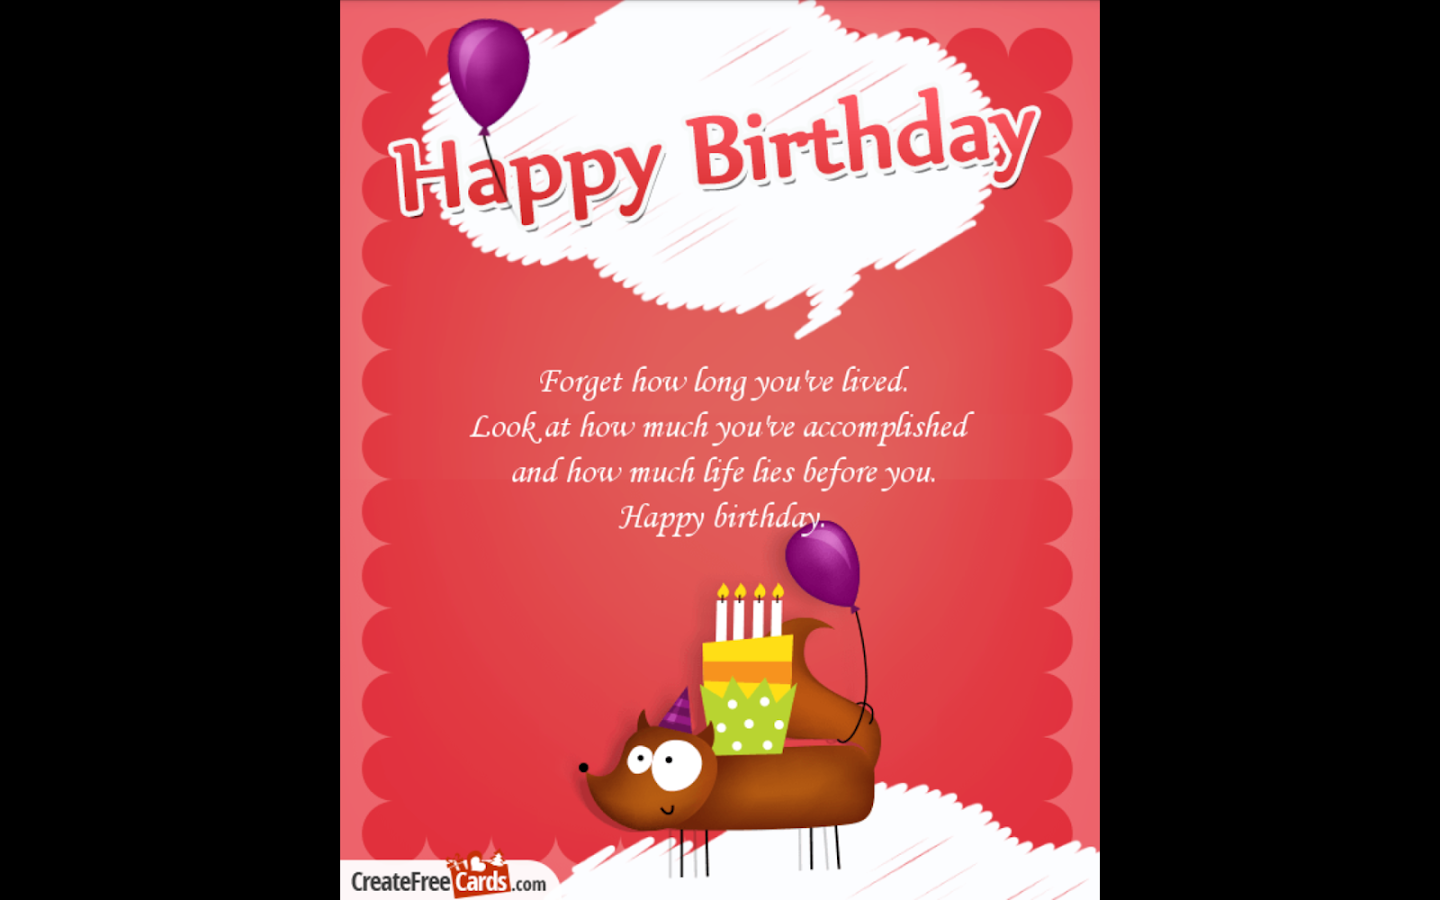 Create birthday card Wishes Android Apps on Google Play – The Who Birthday Card